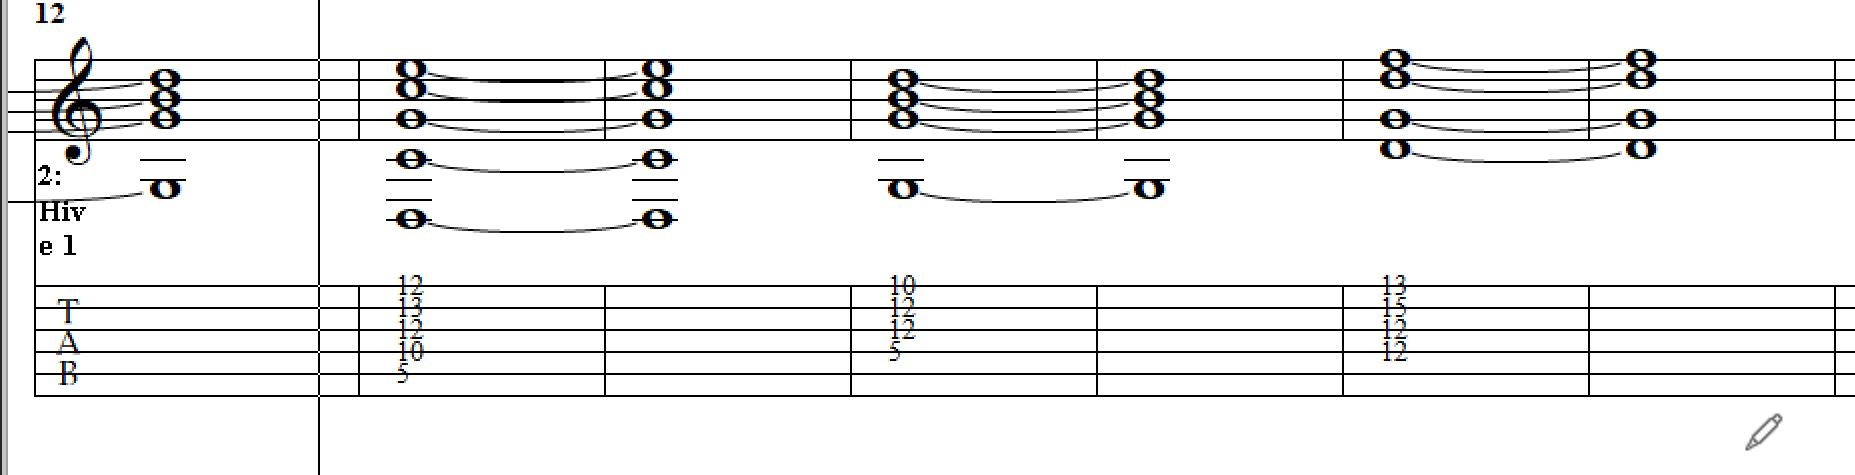 Tablature view